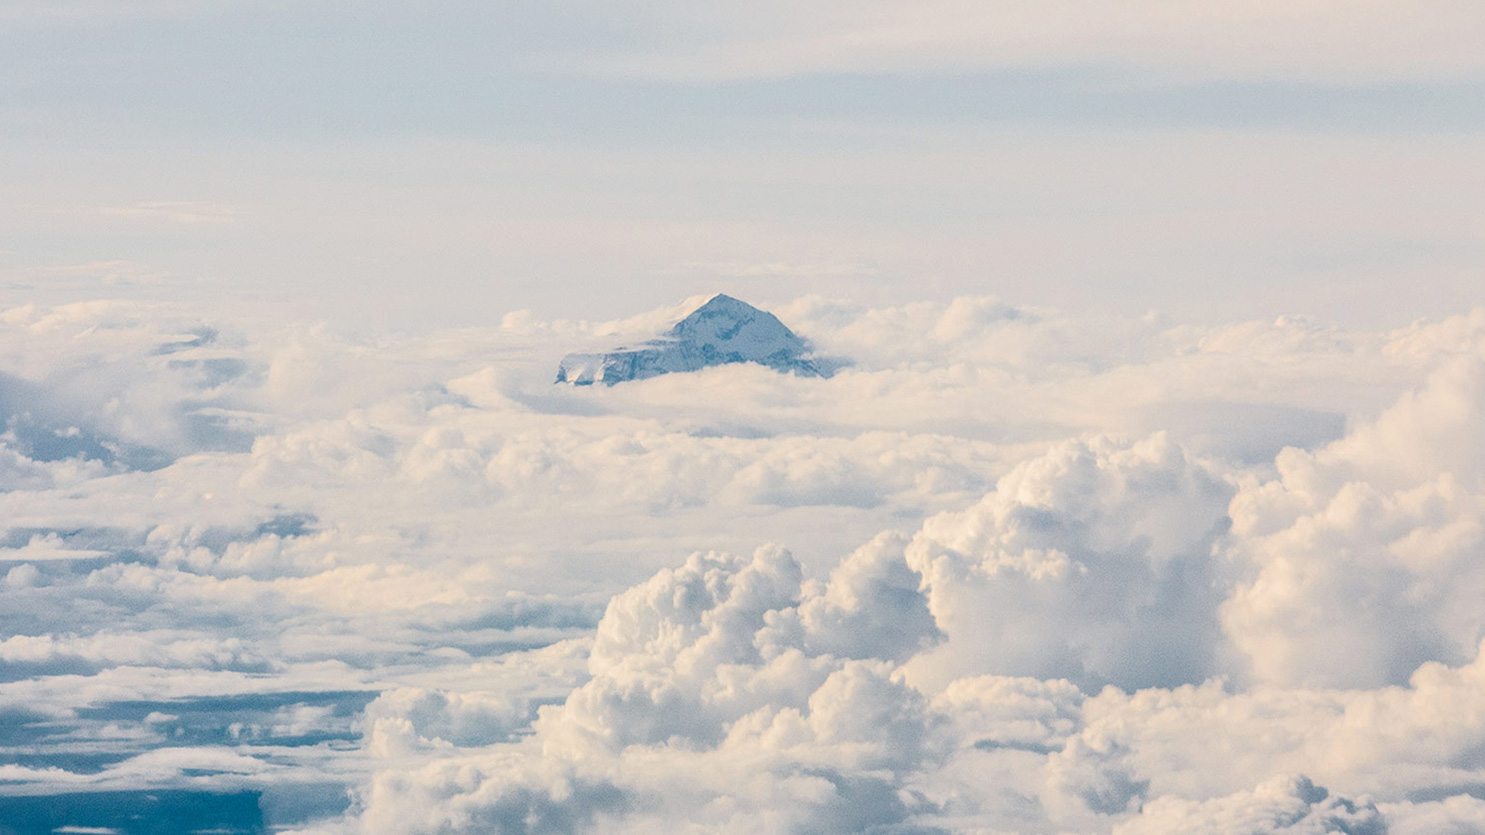 A mountain appearing out of white clouds